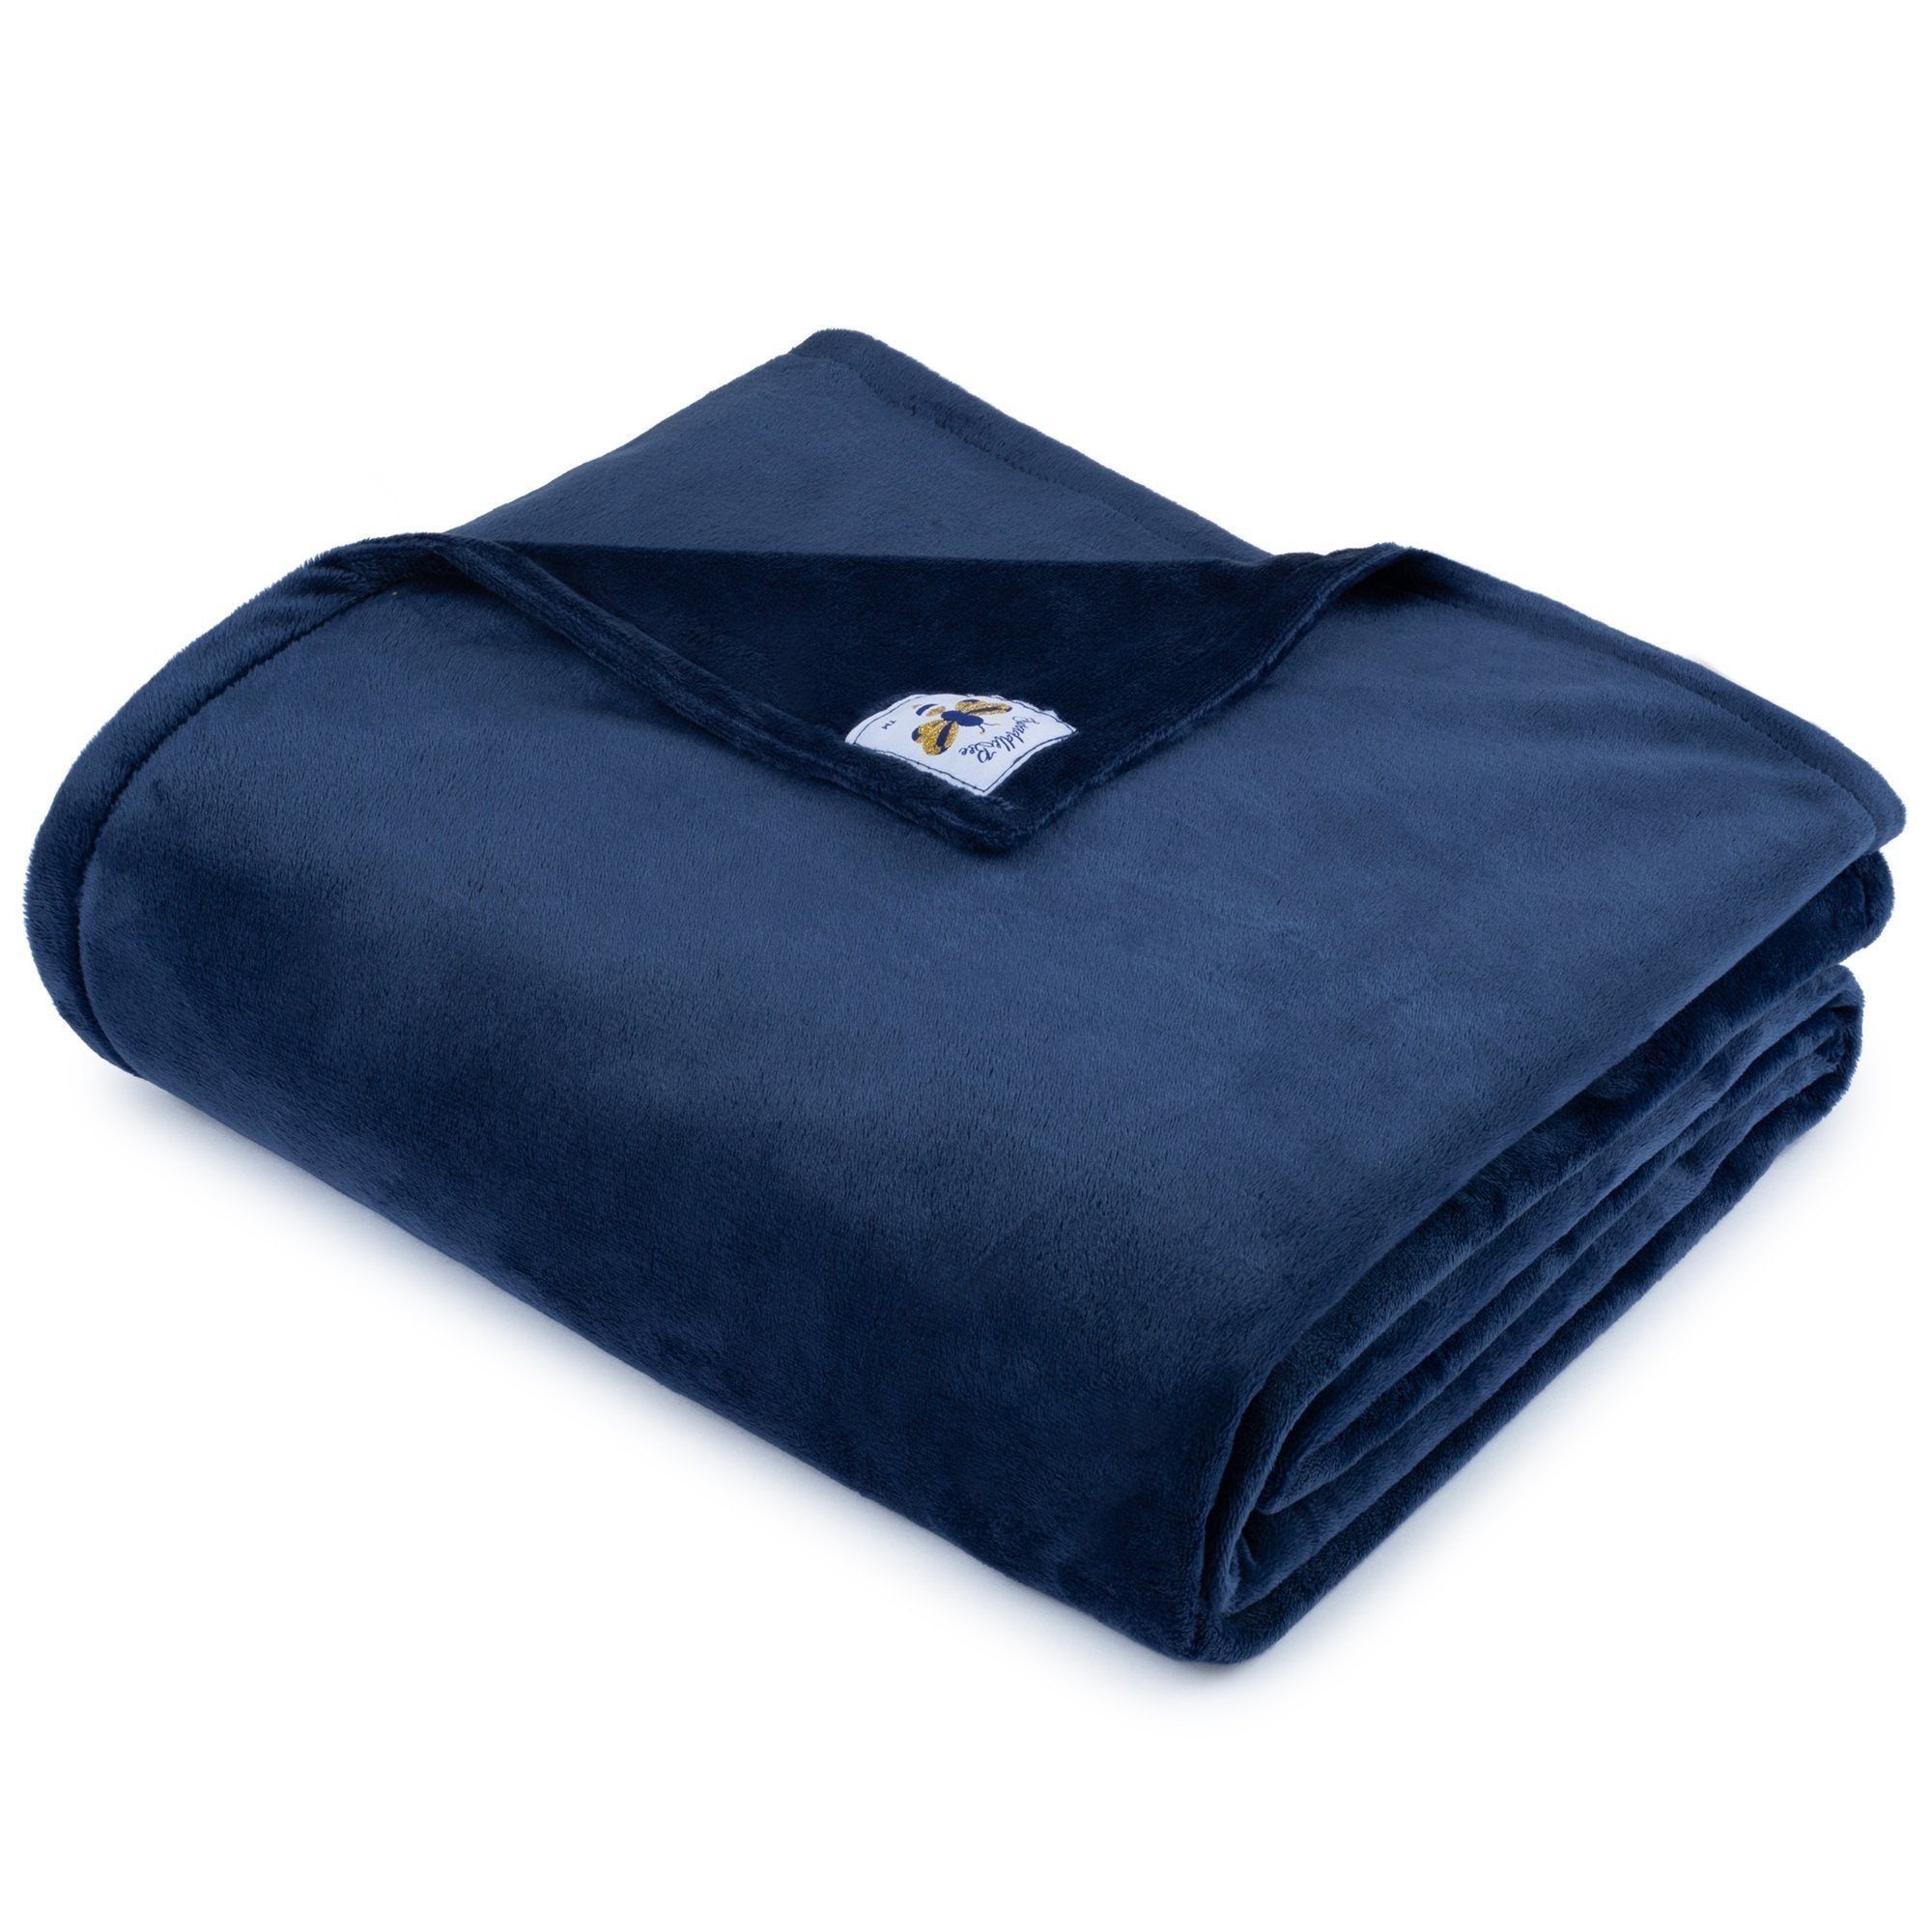 BiggerBee Minky Throw Blanket Solid Navy